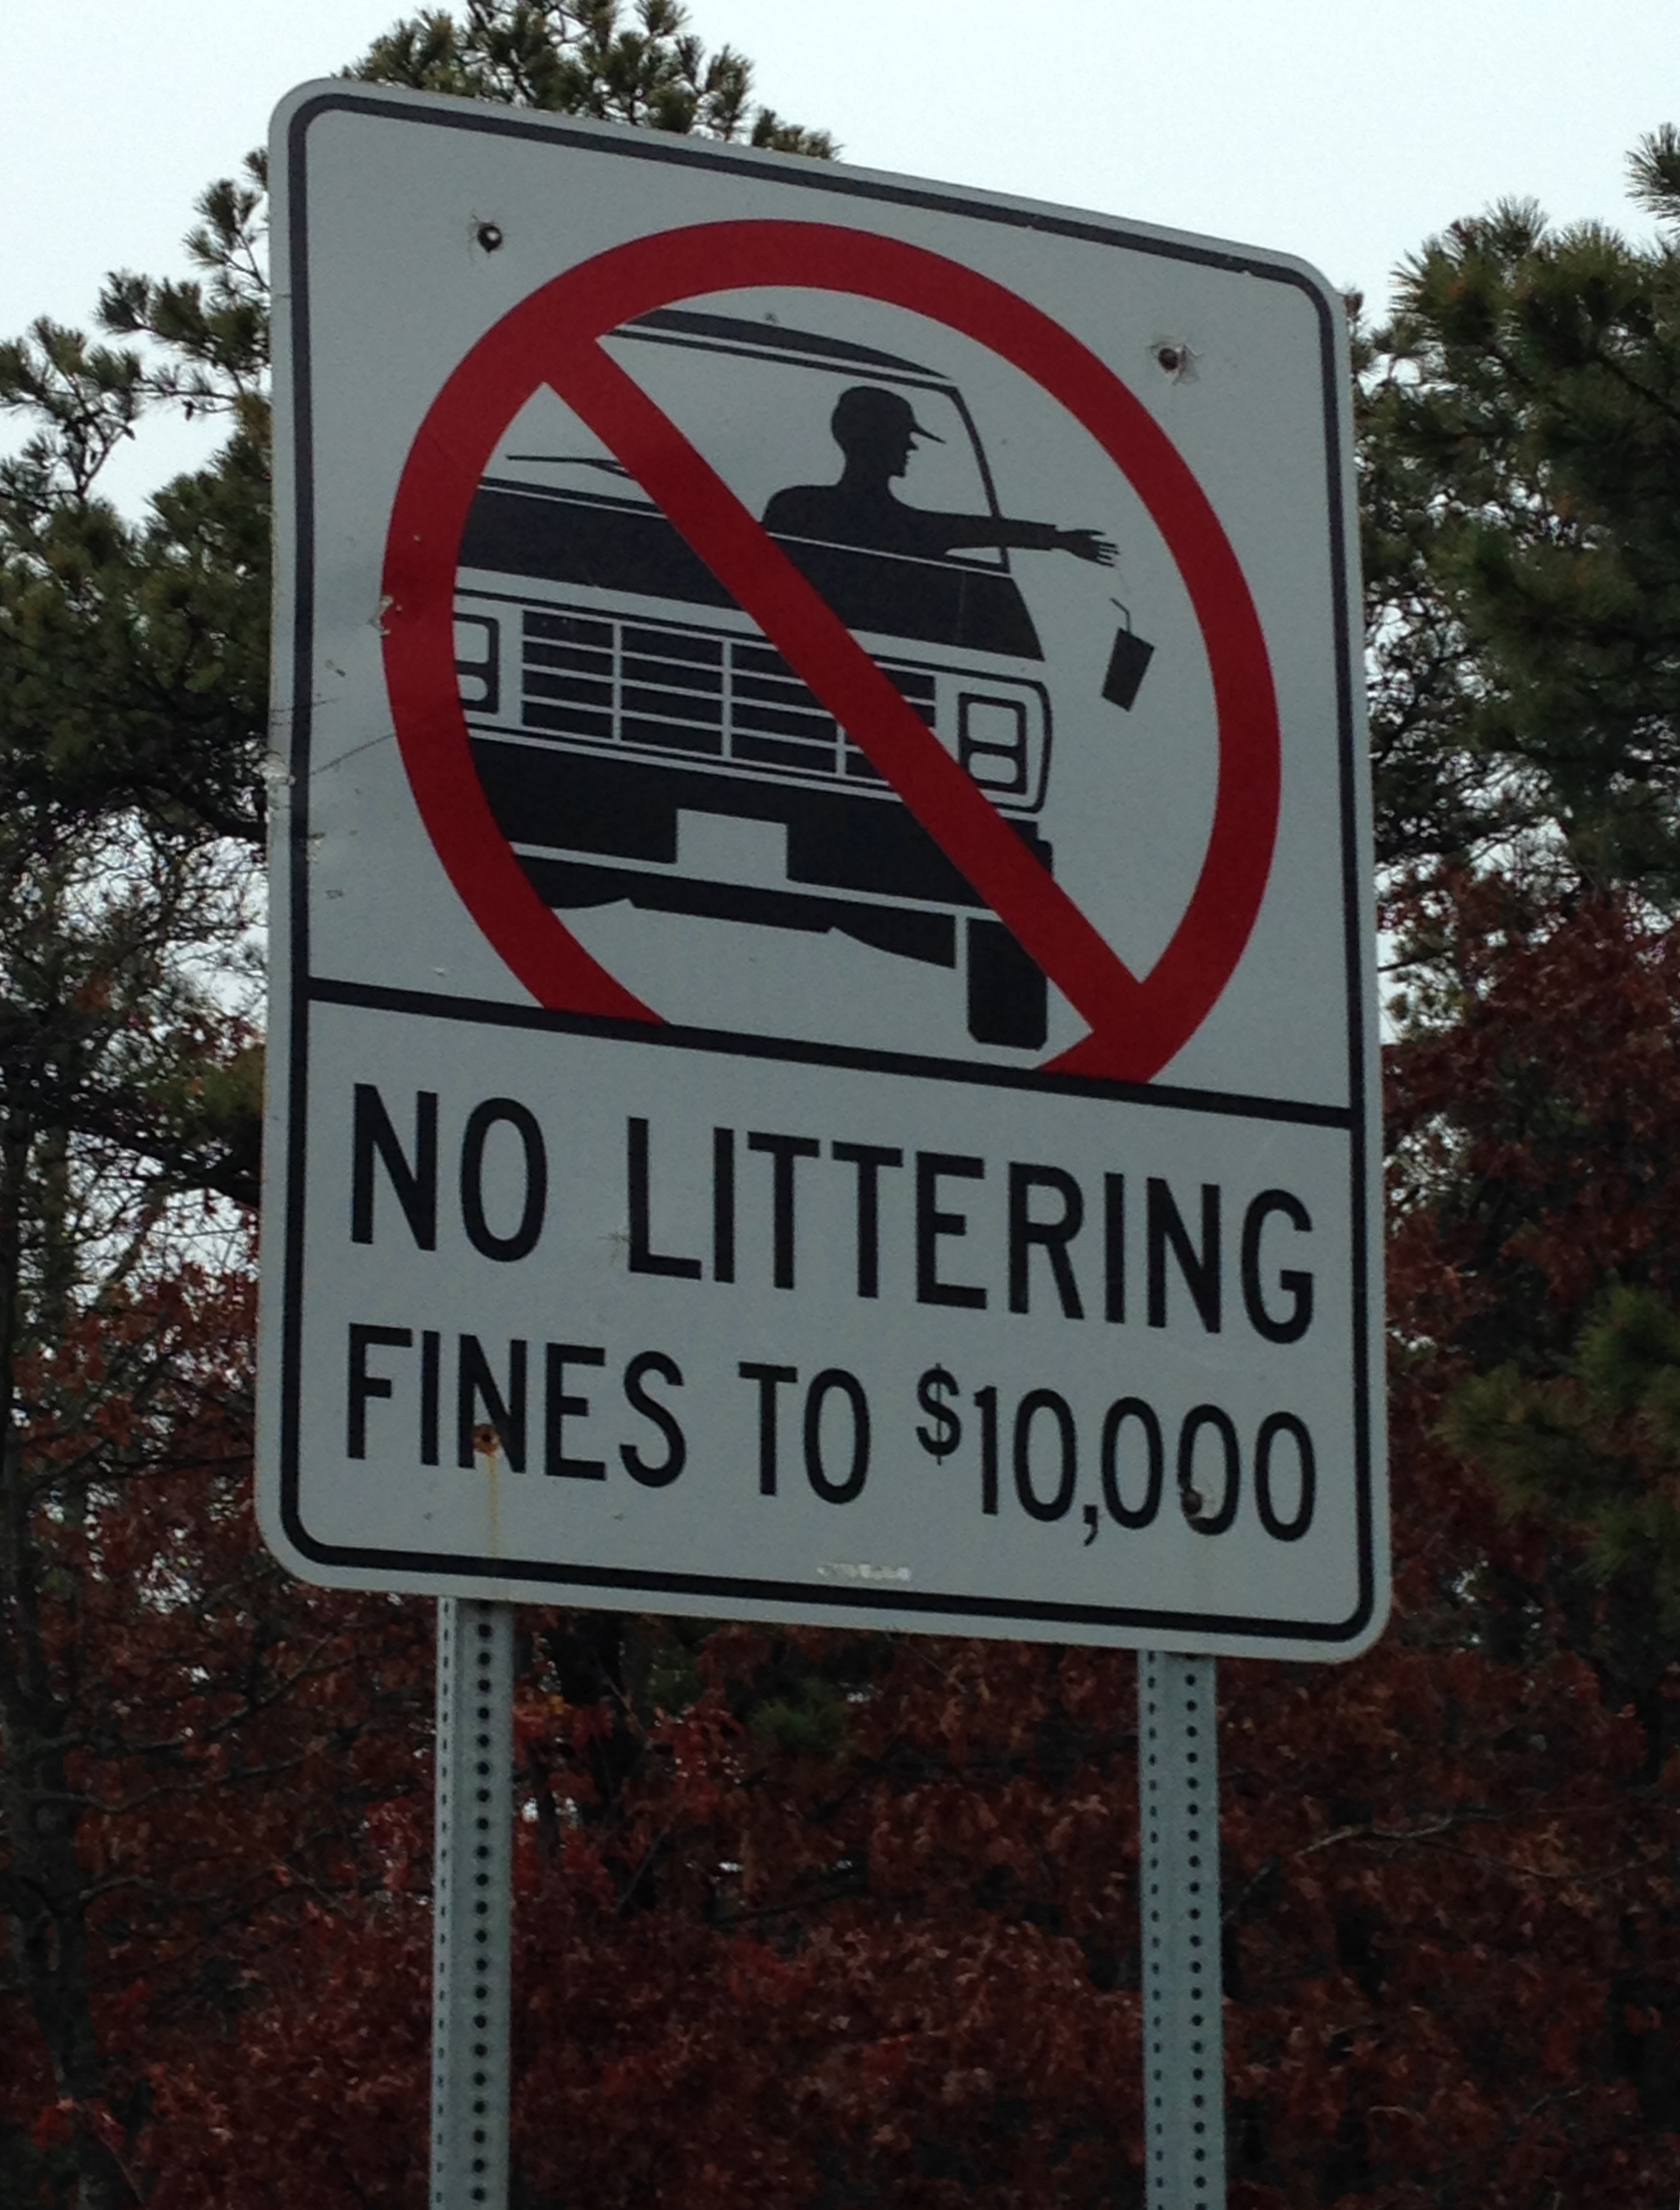 File:No littering sign in Cape Cod.jpg - Wikimedia Commons